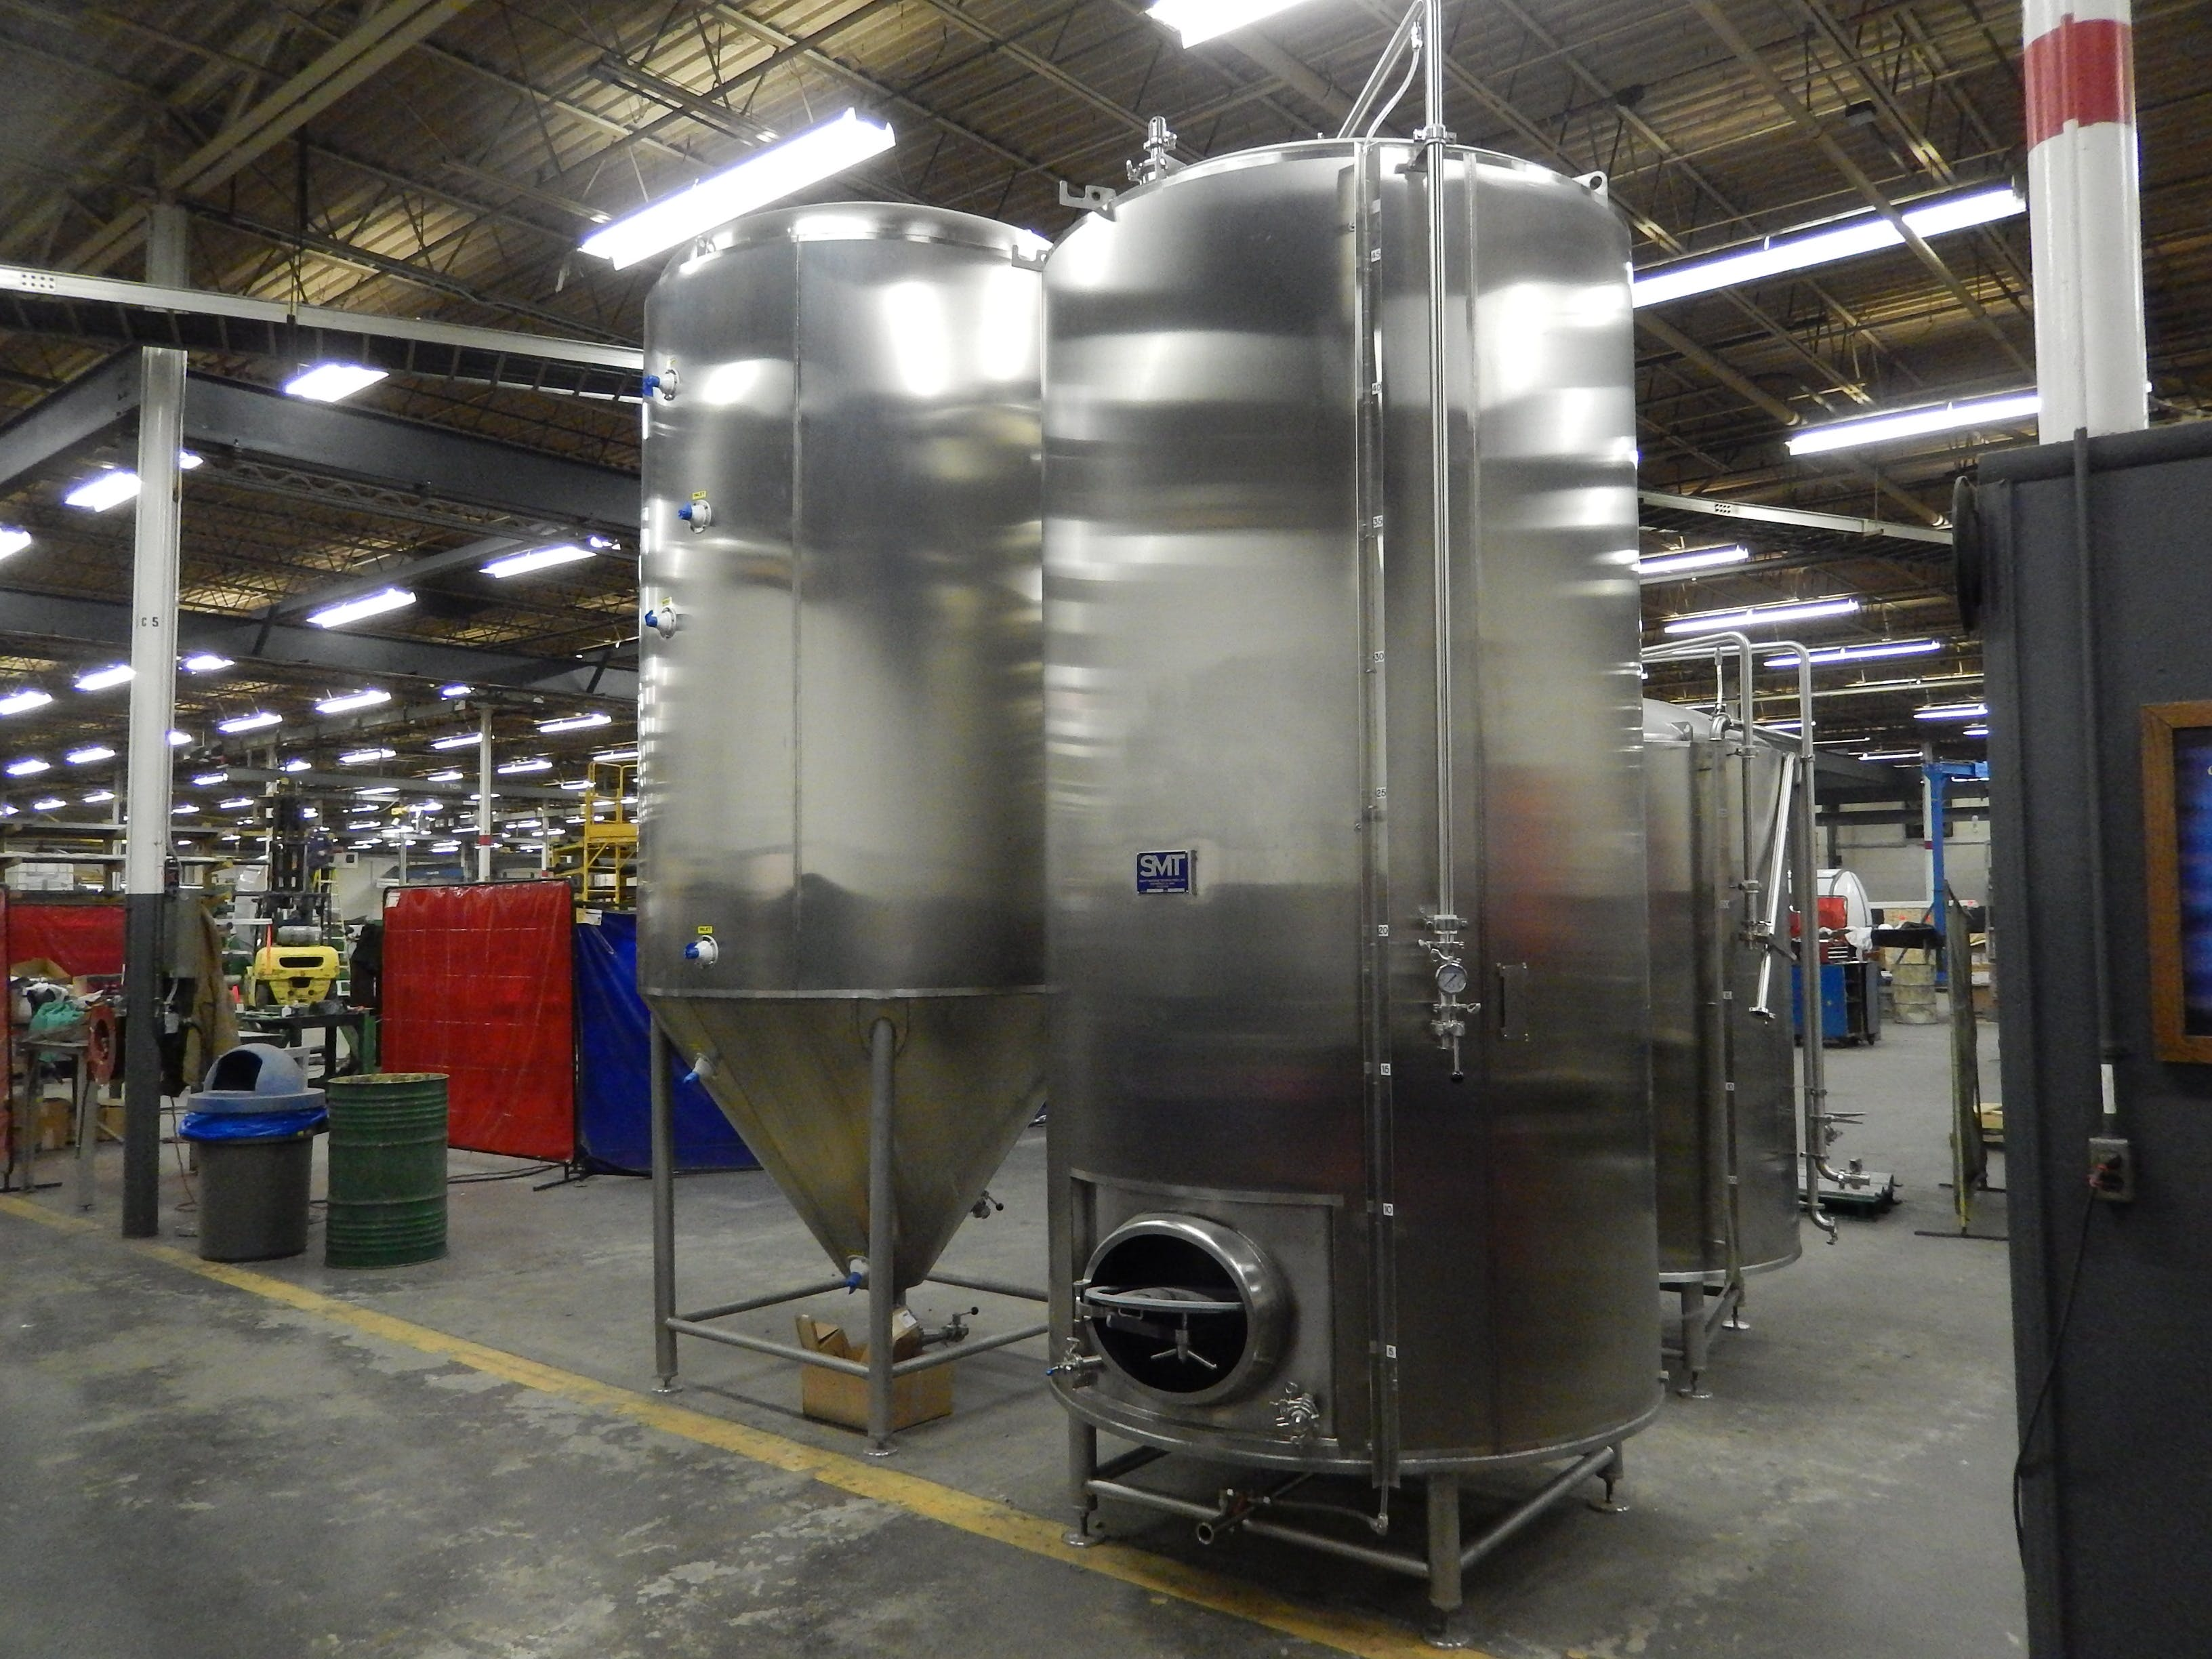 Brewhouse & Cellar tanks Brewhouse sold by Smart Machine Technologies, Inc